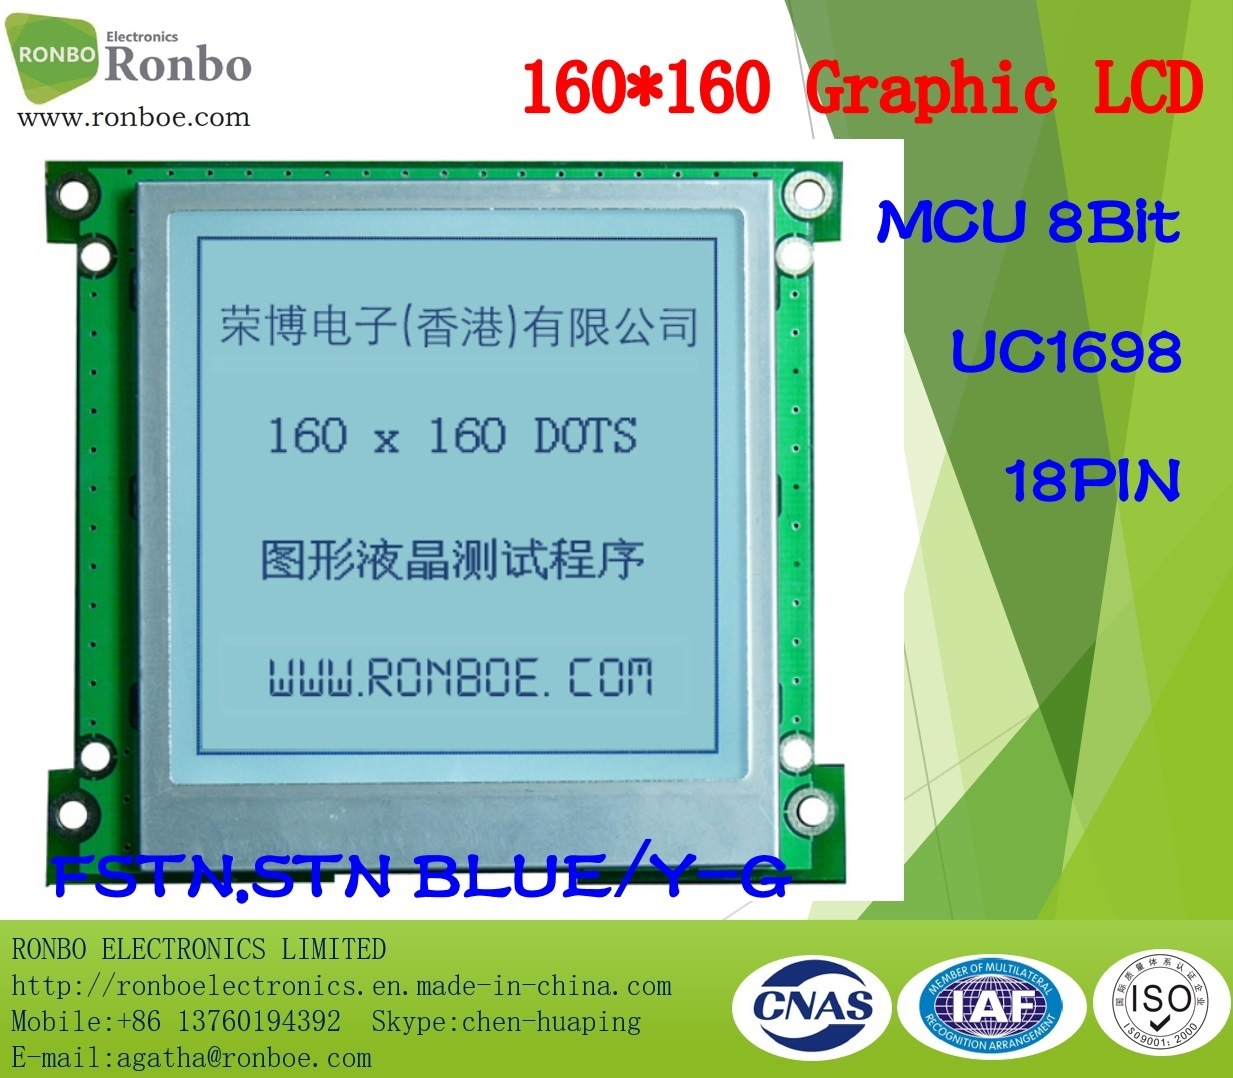 160X160 COB Graphic LCD Module, UC1698, 18pin, for POS, Doorbell, Medical, Cars